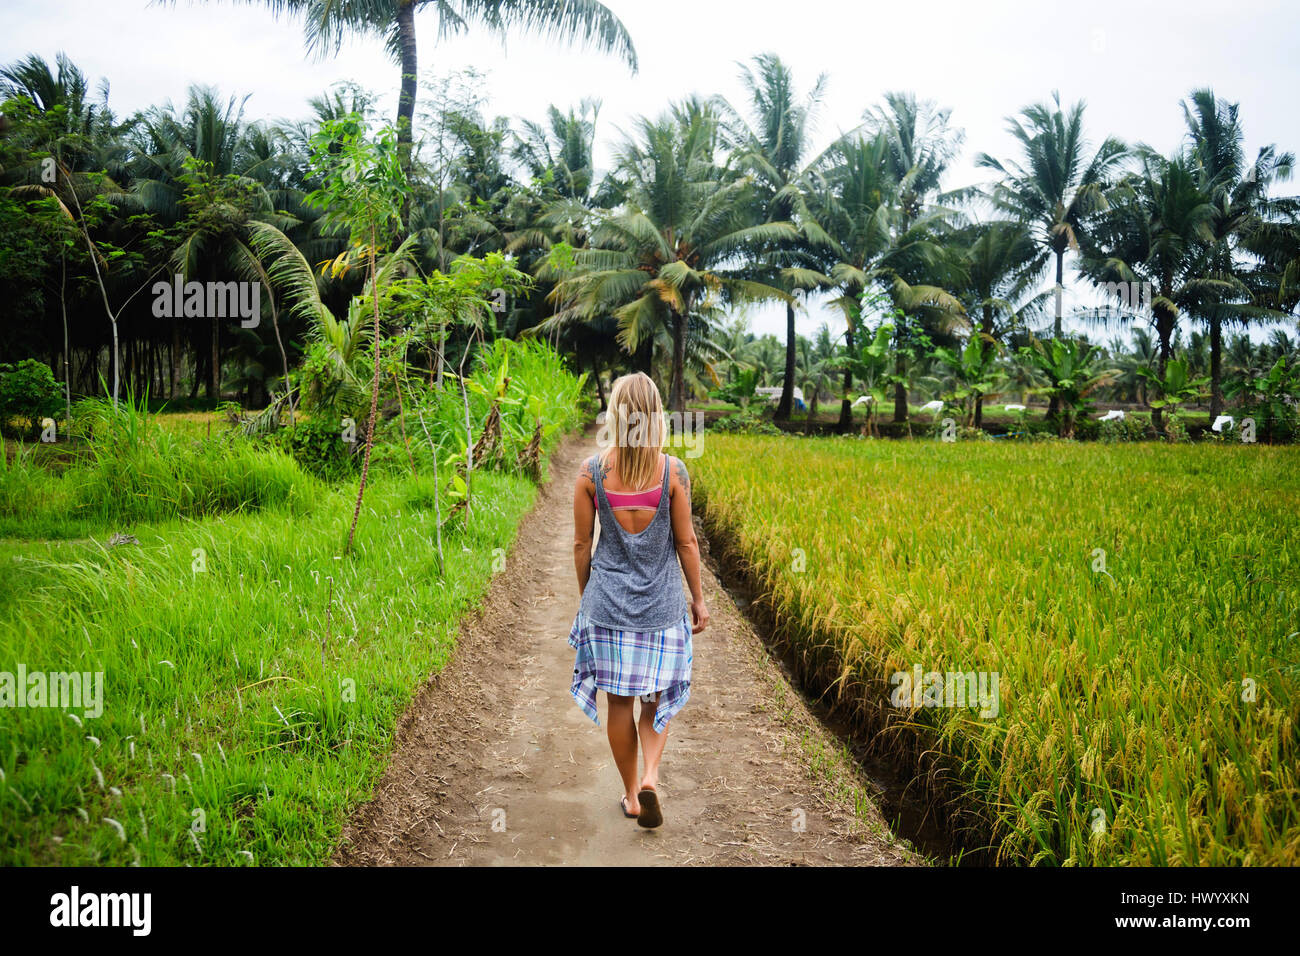 Indonesia, Java, back view of woman walking on dirt track through rice fields - Stock Image